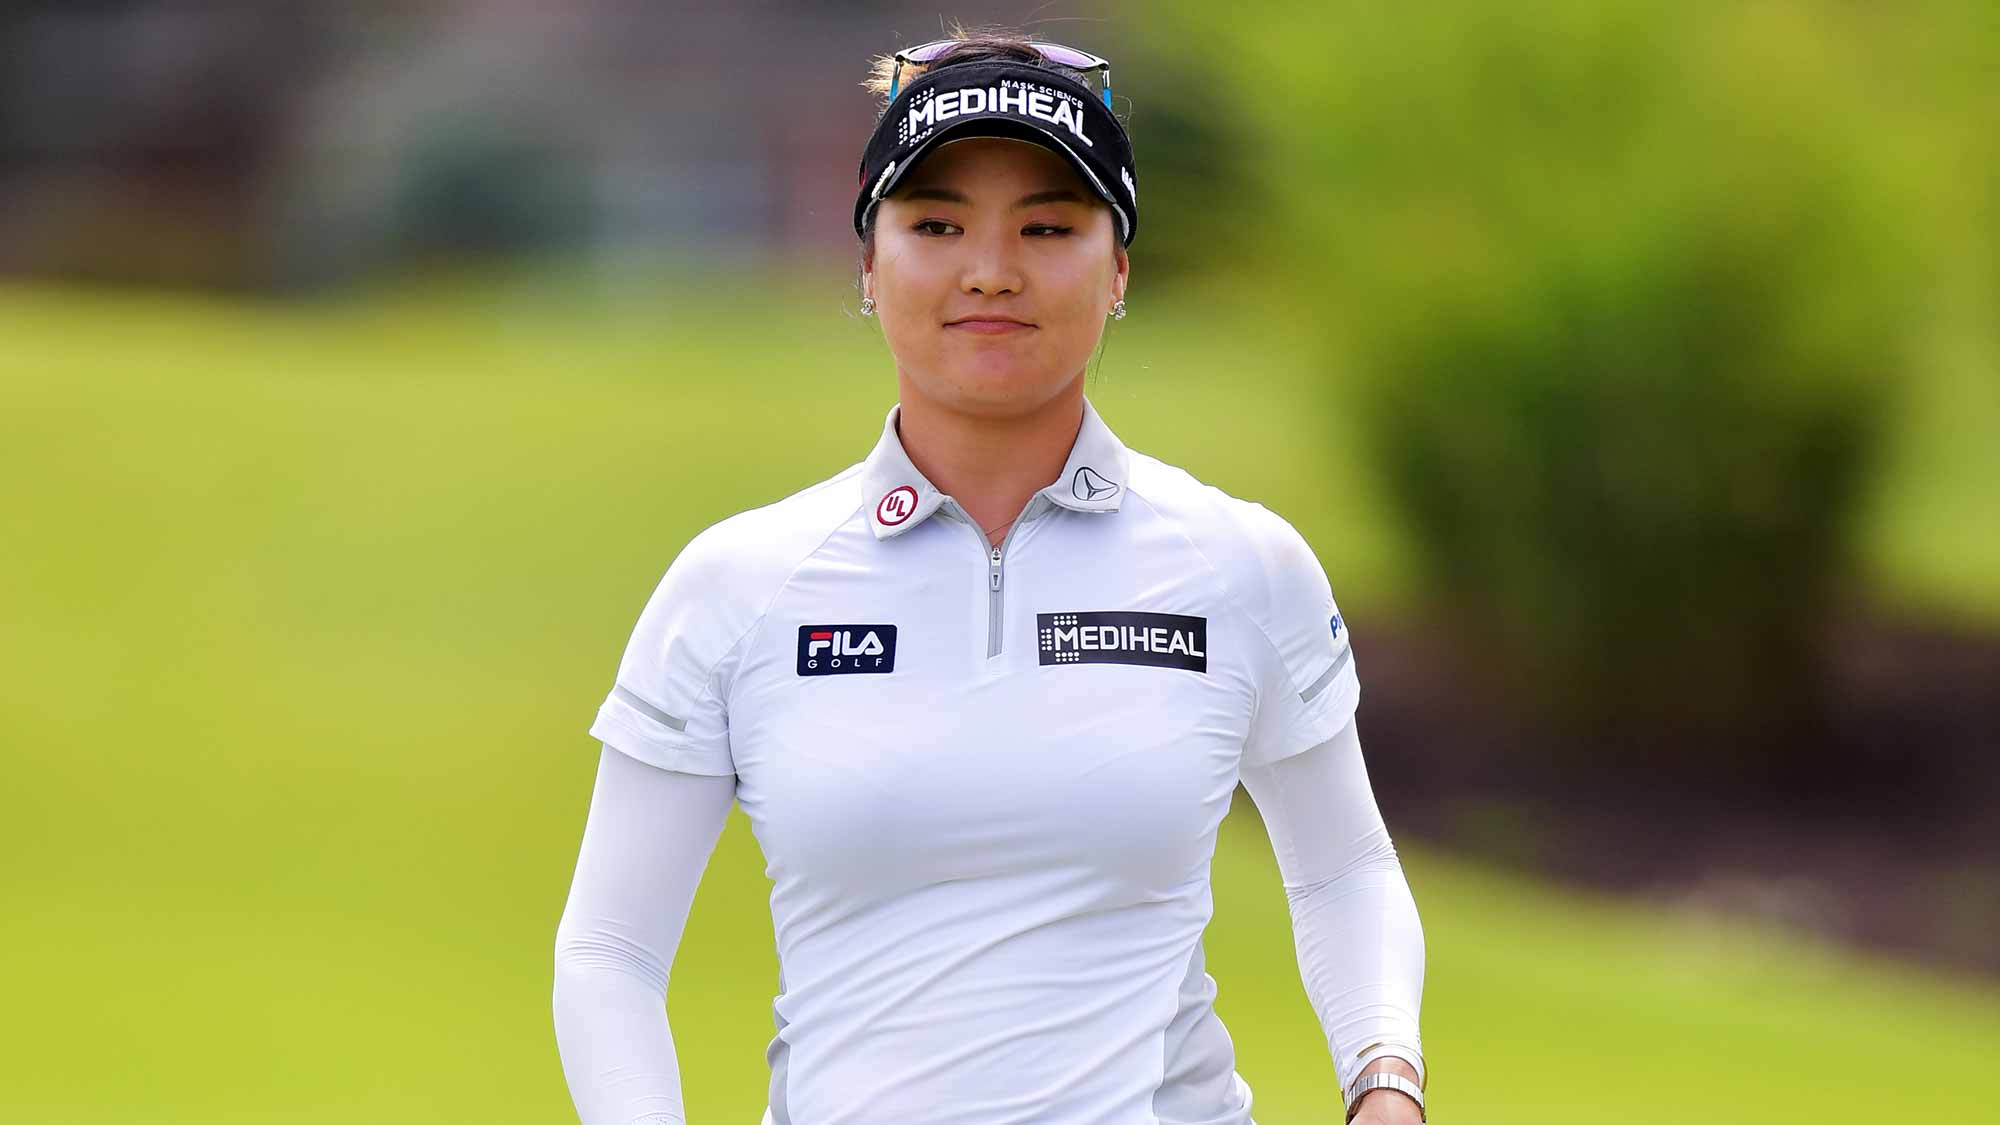 So Yeon Ryu Becomes No. 1 Player in Rolex Rankings